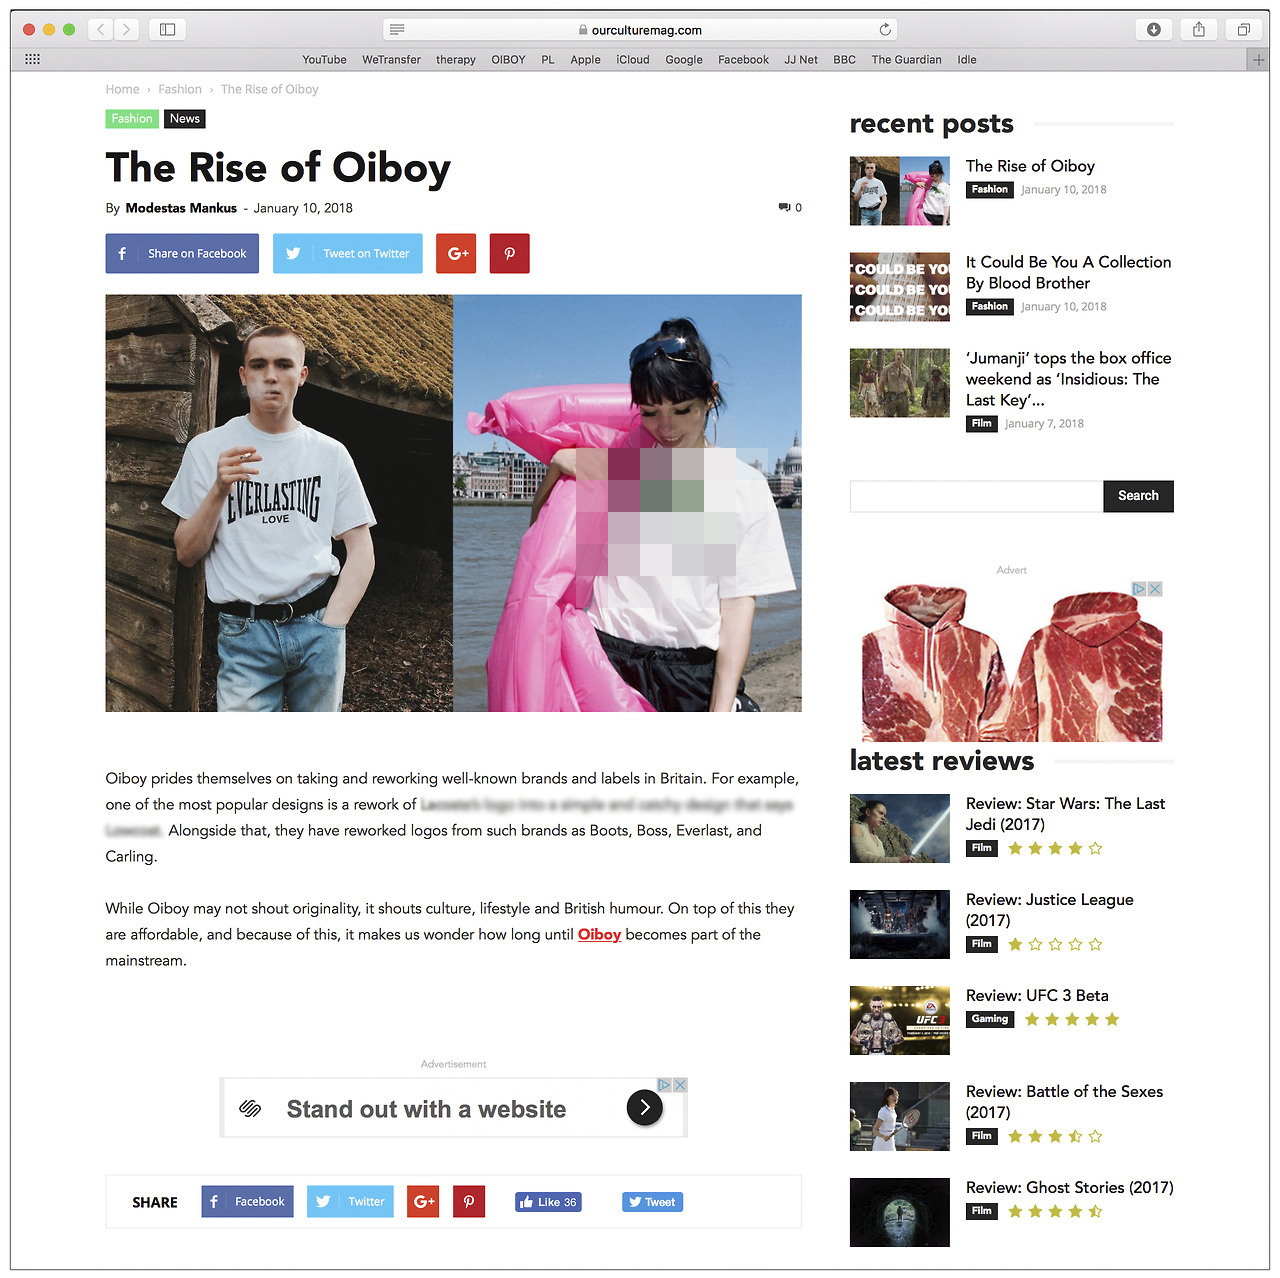 """'The Rise of OIBOY' By Modestas Mankus for OUR CULTURE MAG: """"With the world of Fashion engaging with the power of online shopping, a nifty and exciting brand Oiboy has emerged"""". Read the whole article here:   https://ourculturemag.com/2018/01/10/the-rise-of-oiboy/"""